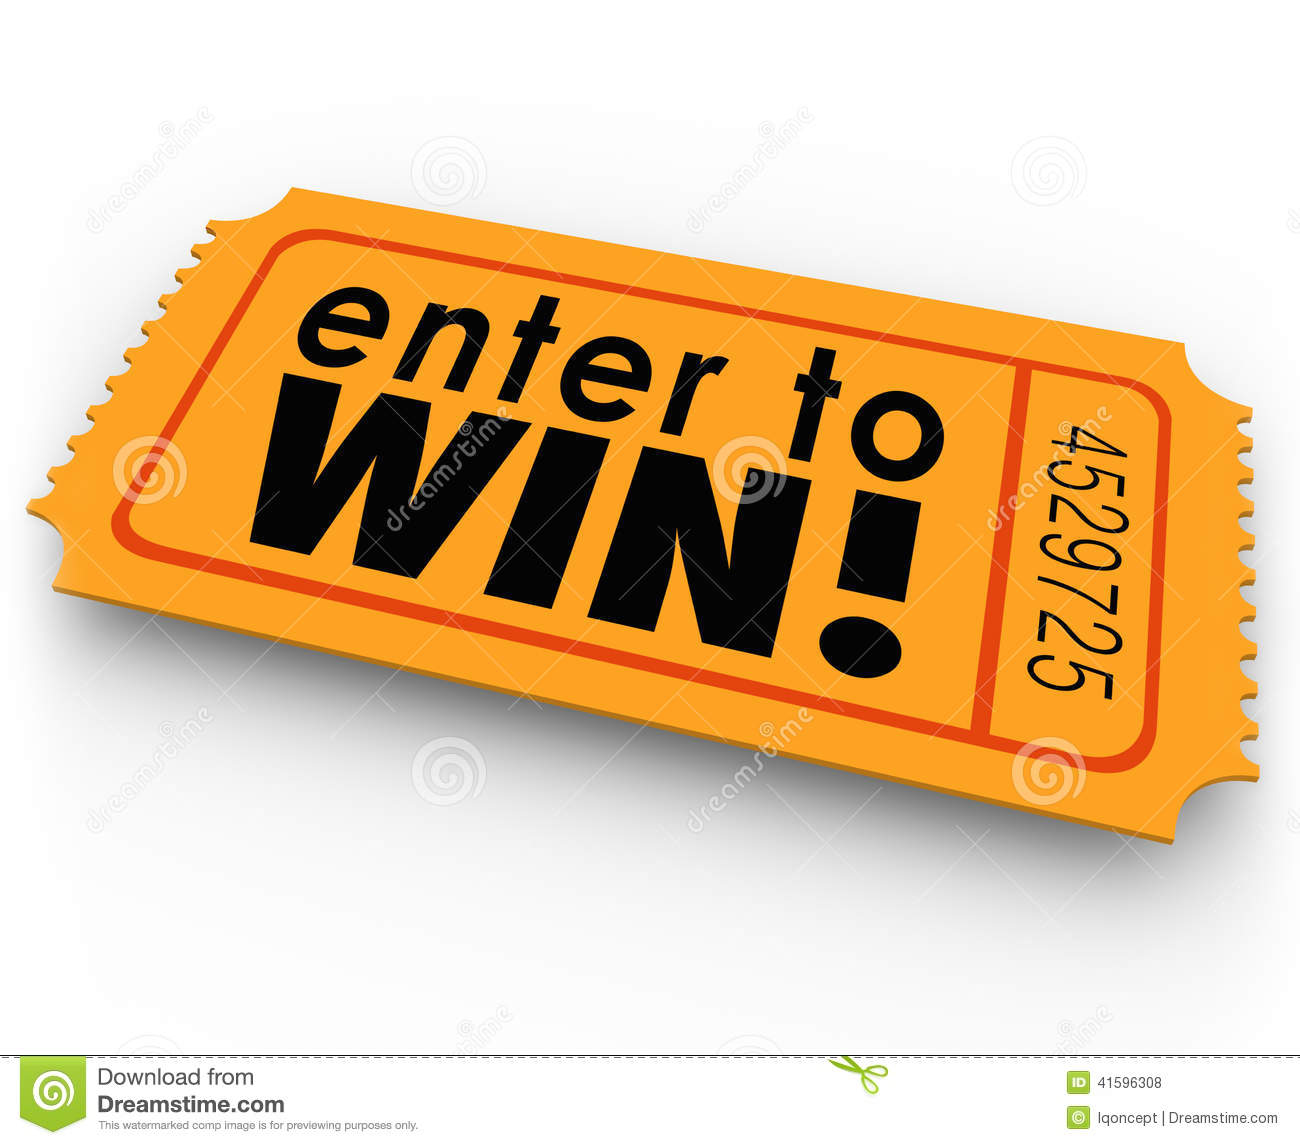 Win Words On An Orange Ticket For A Raff-Win Words On An Orange Ticket For A Raffle Or Jackpt Drawing Where You-10